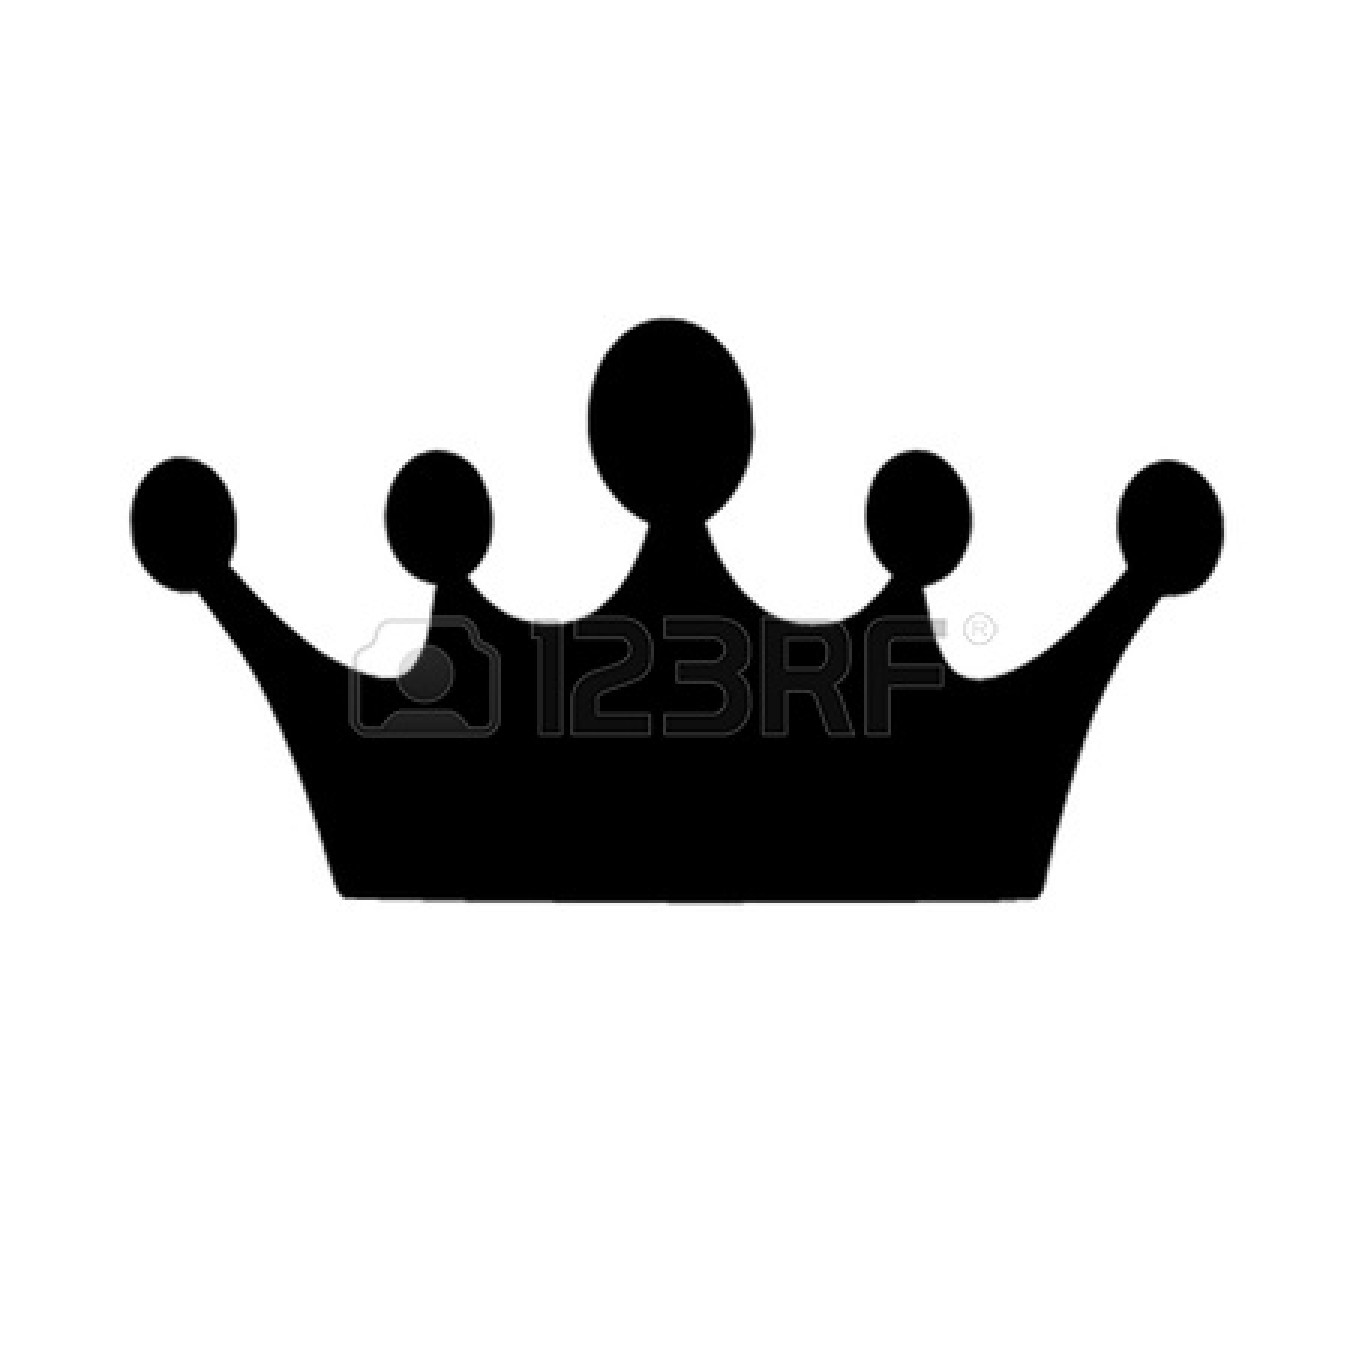 Clip Art Crown Clipart Black And White crown black and white clipart kid king transparent background clip art